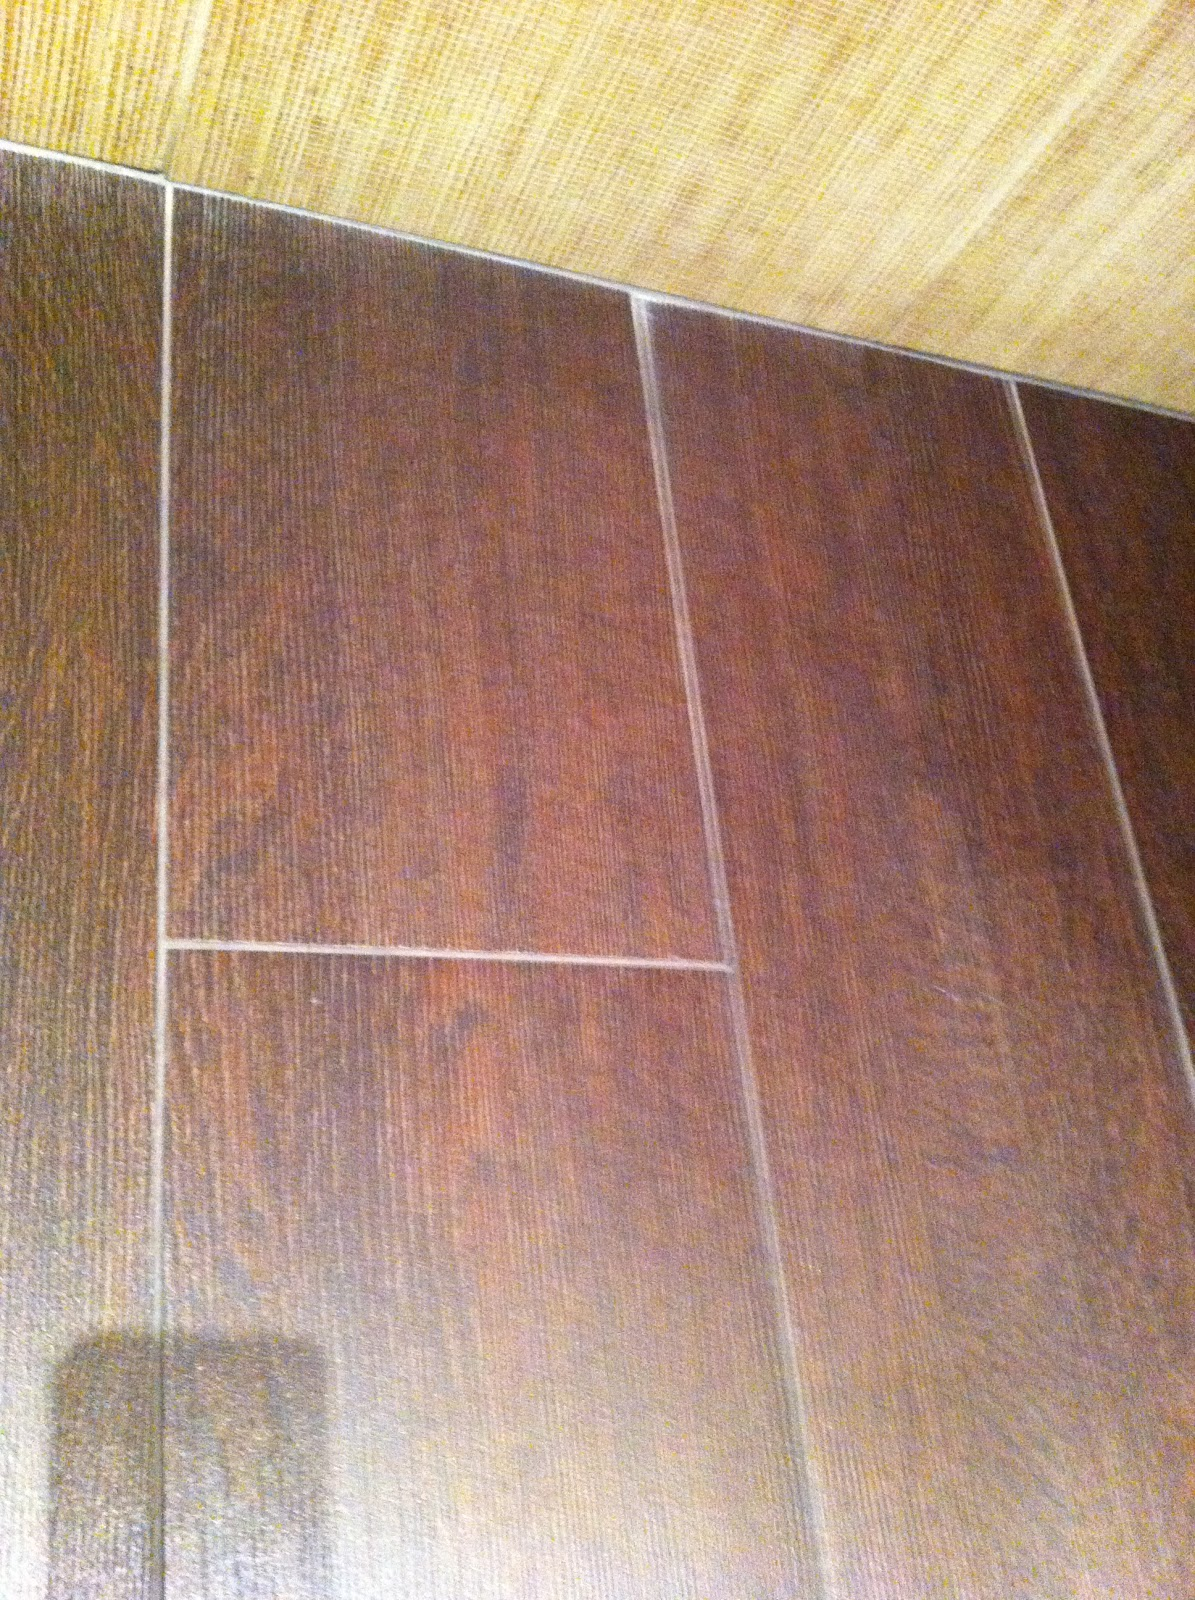 Faux wood flooring crowdbuild for for Fake hardwood tile